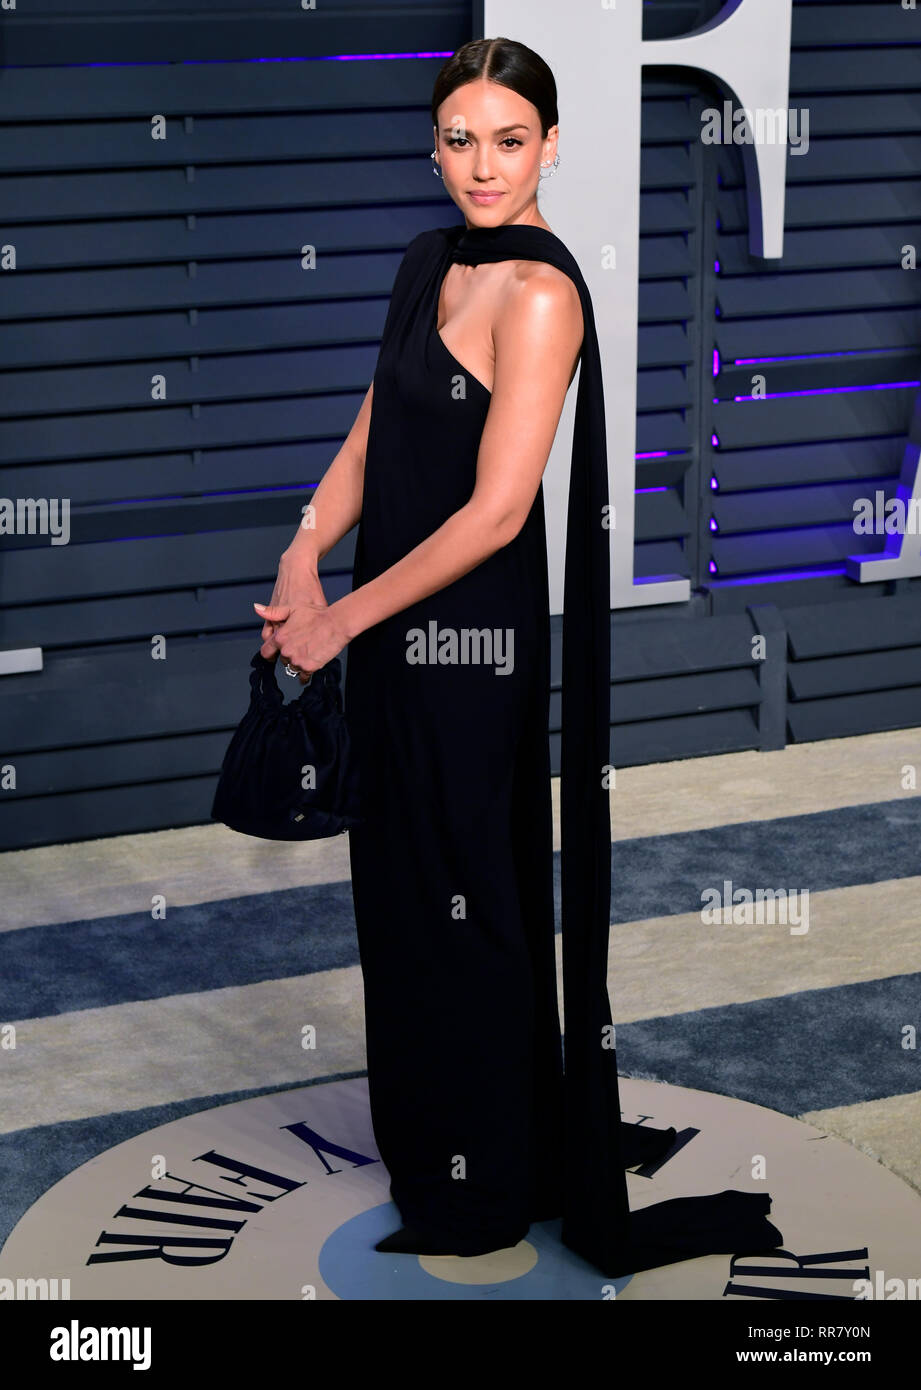 e0cea5d78ec Jessica Alba attending the Vanity Fair Oscar Party held at the Wallis  Annenberg Center for the Performing Arts in Beverly Hills